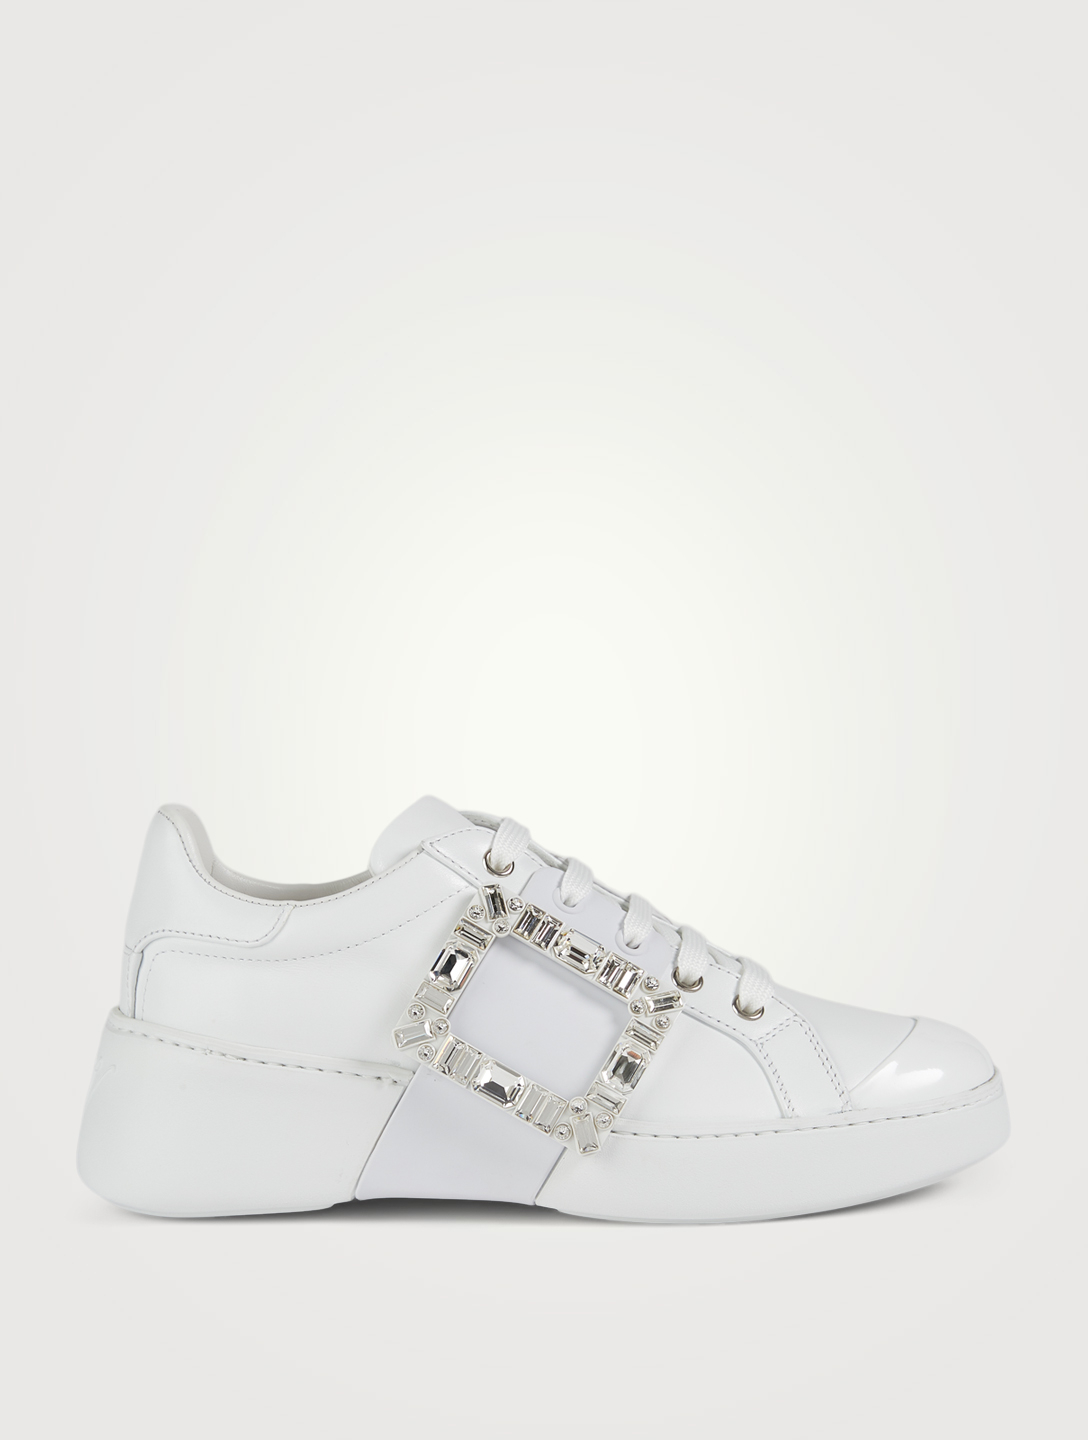 ROGER VIVIER Viv' Skate Strass Buckle Leather Sneakers Women's White